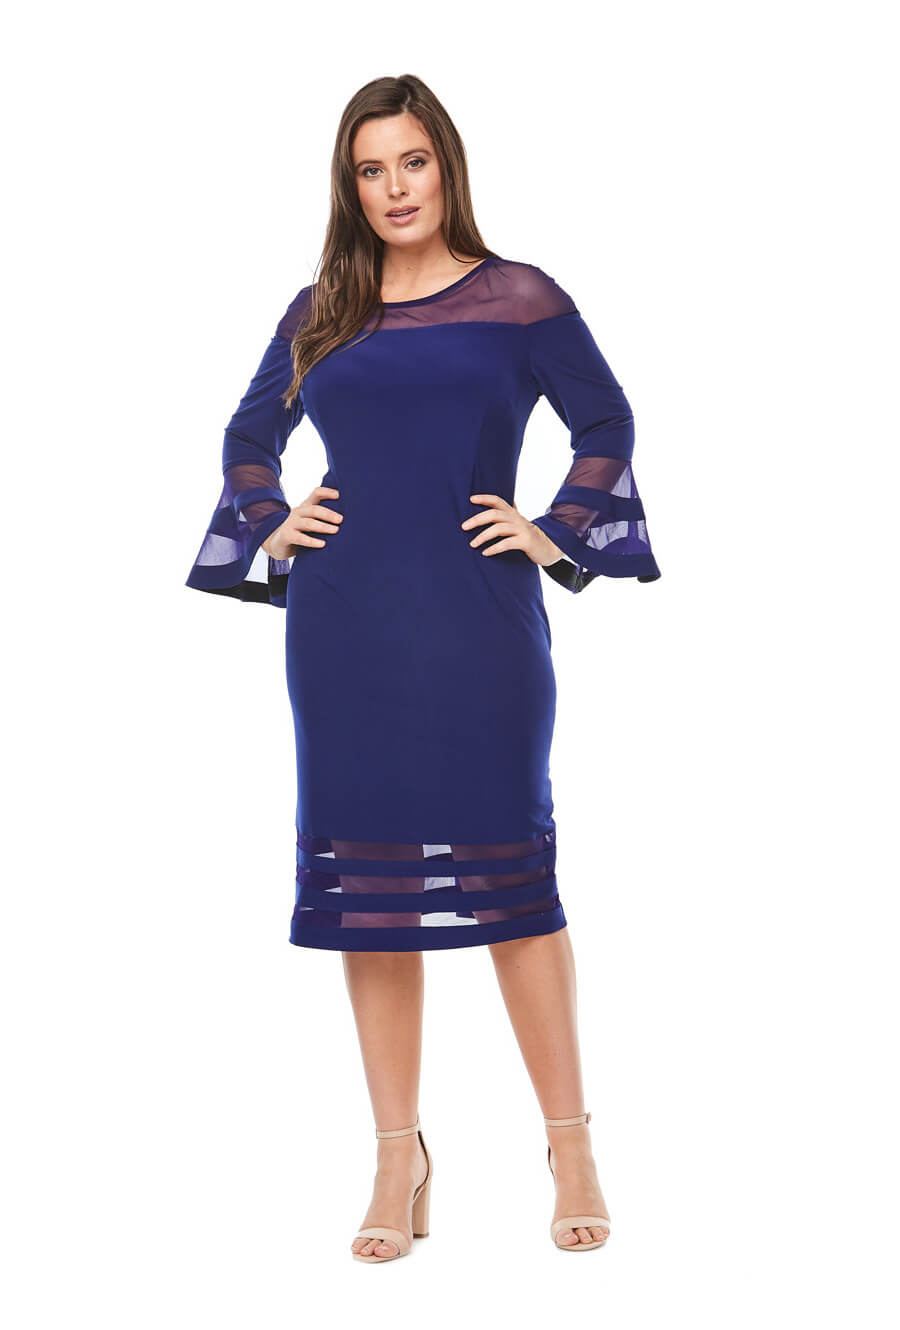 Stretch jersey cocktail dress with long bell sleeves & sheer panel detail